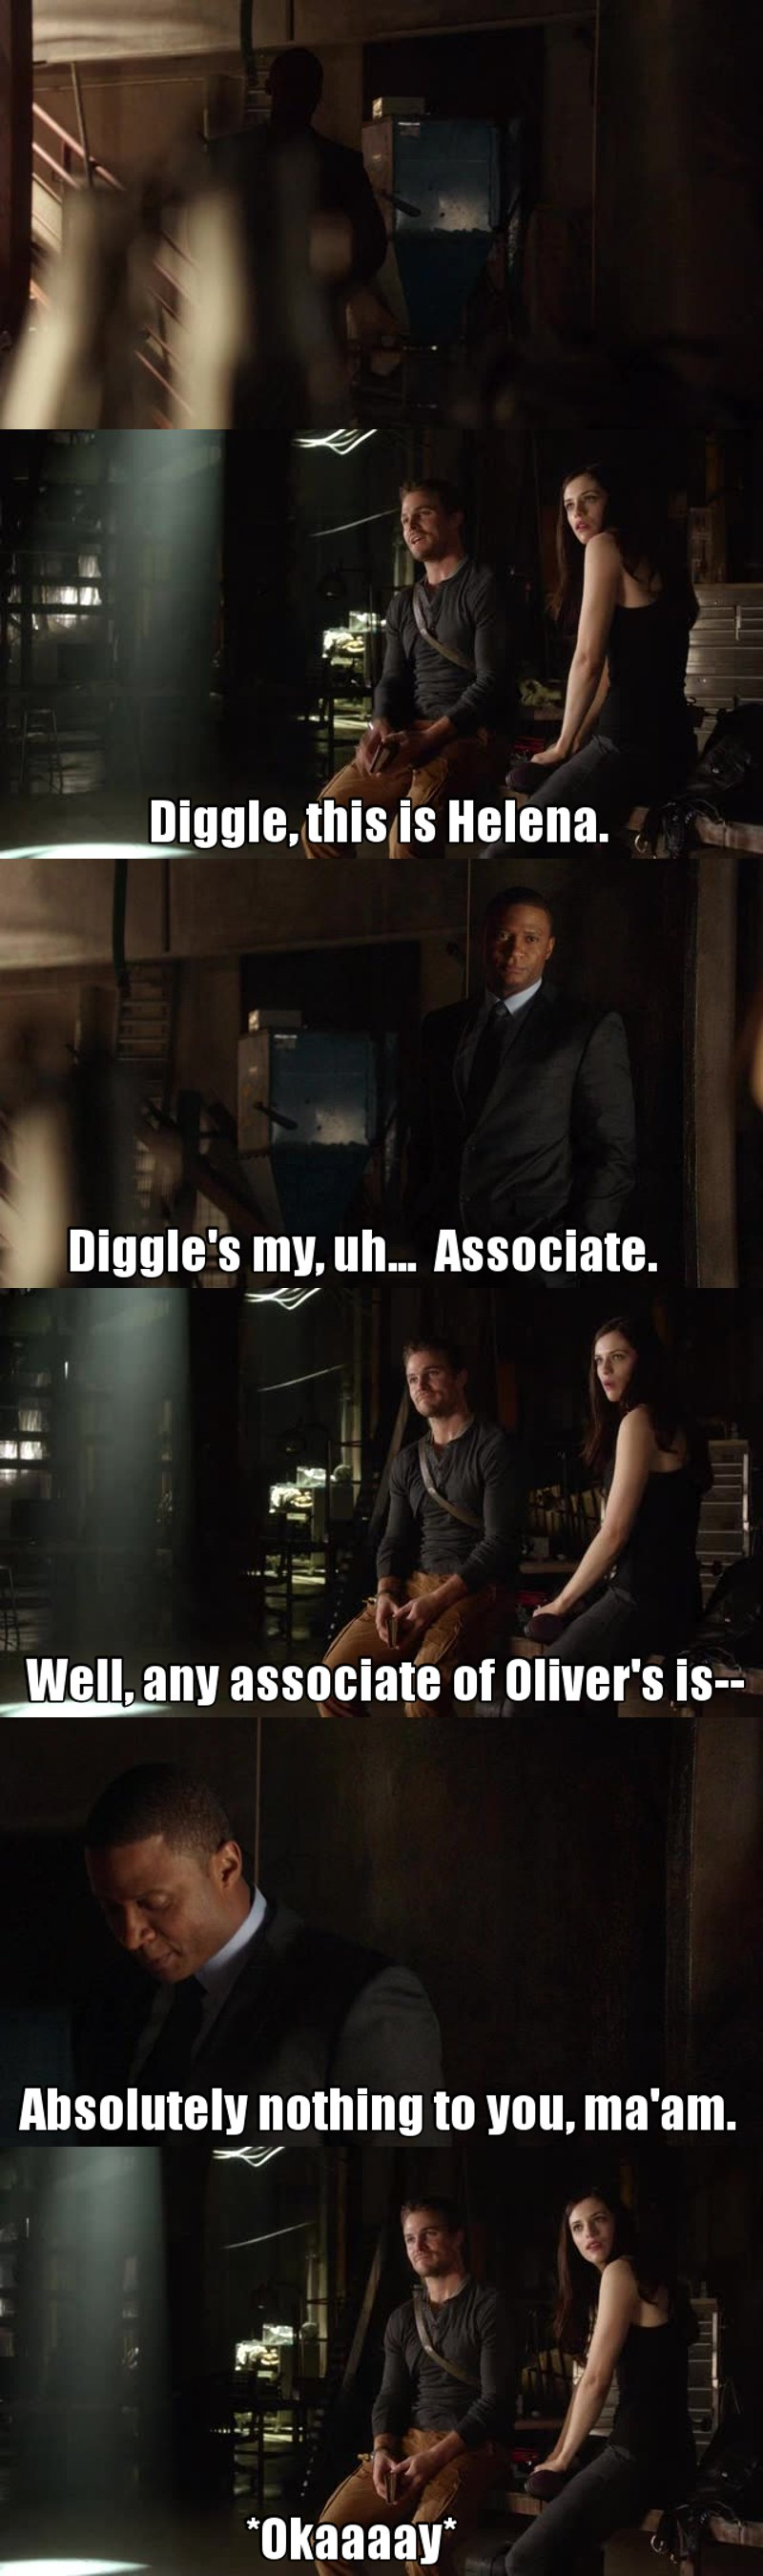 I just love him ! Diggle is awesome 🙌❤️